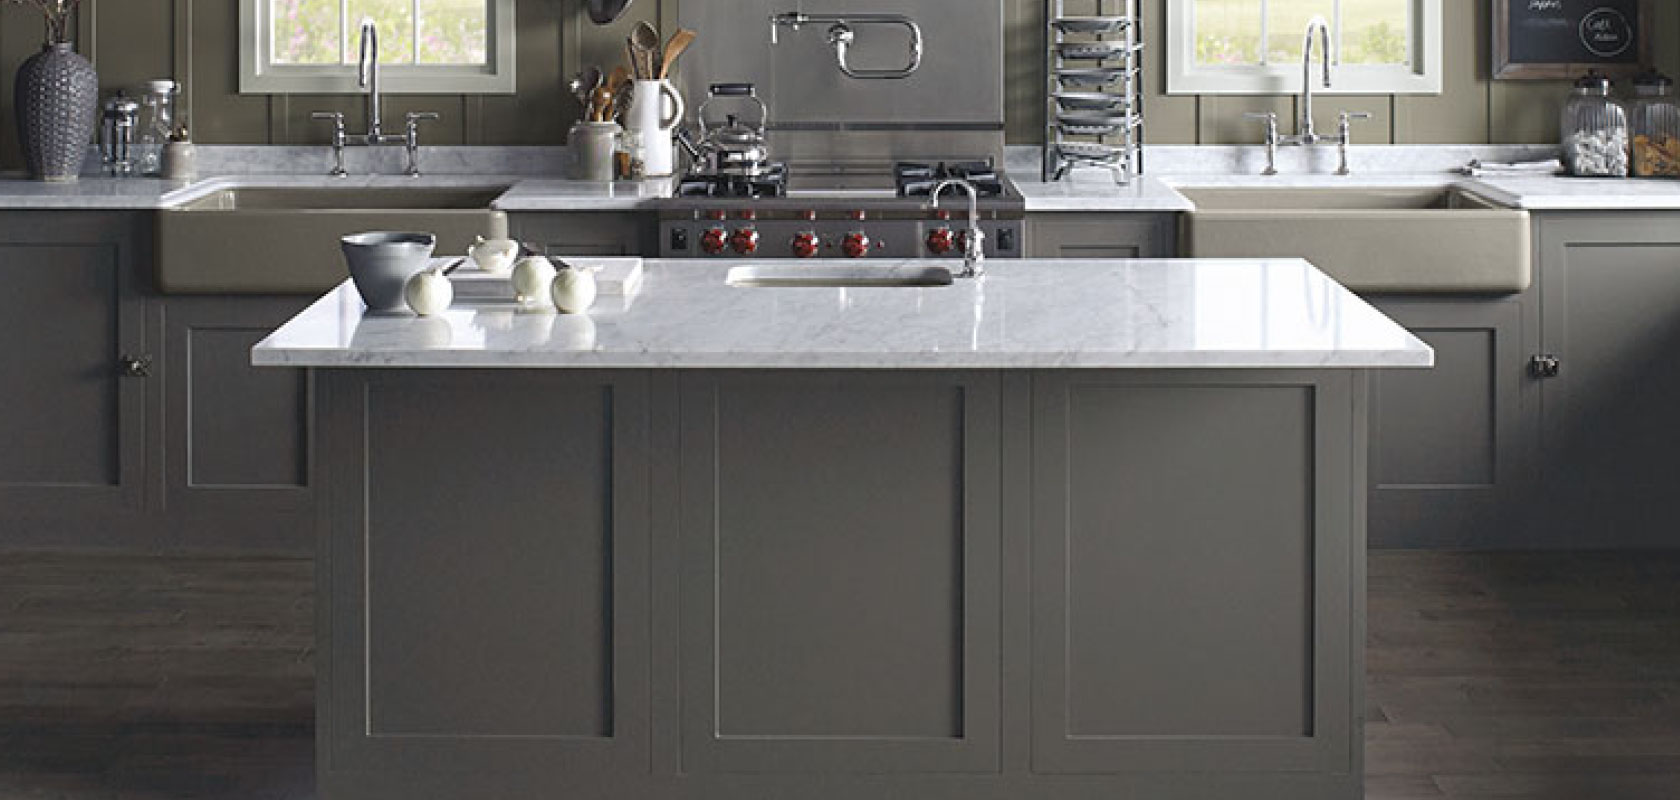 Kitchen Cabinet Makeovers: A How To - Paintshop